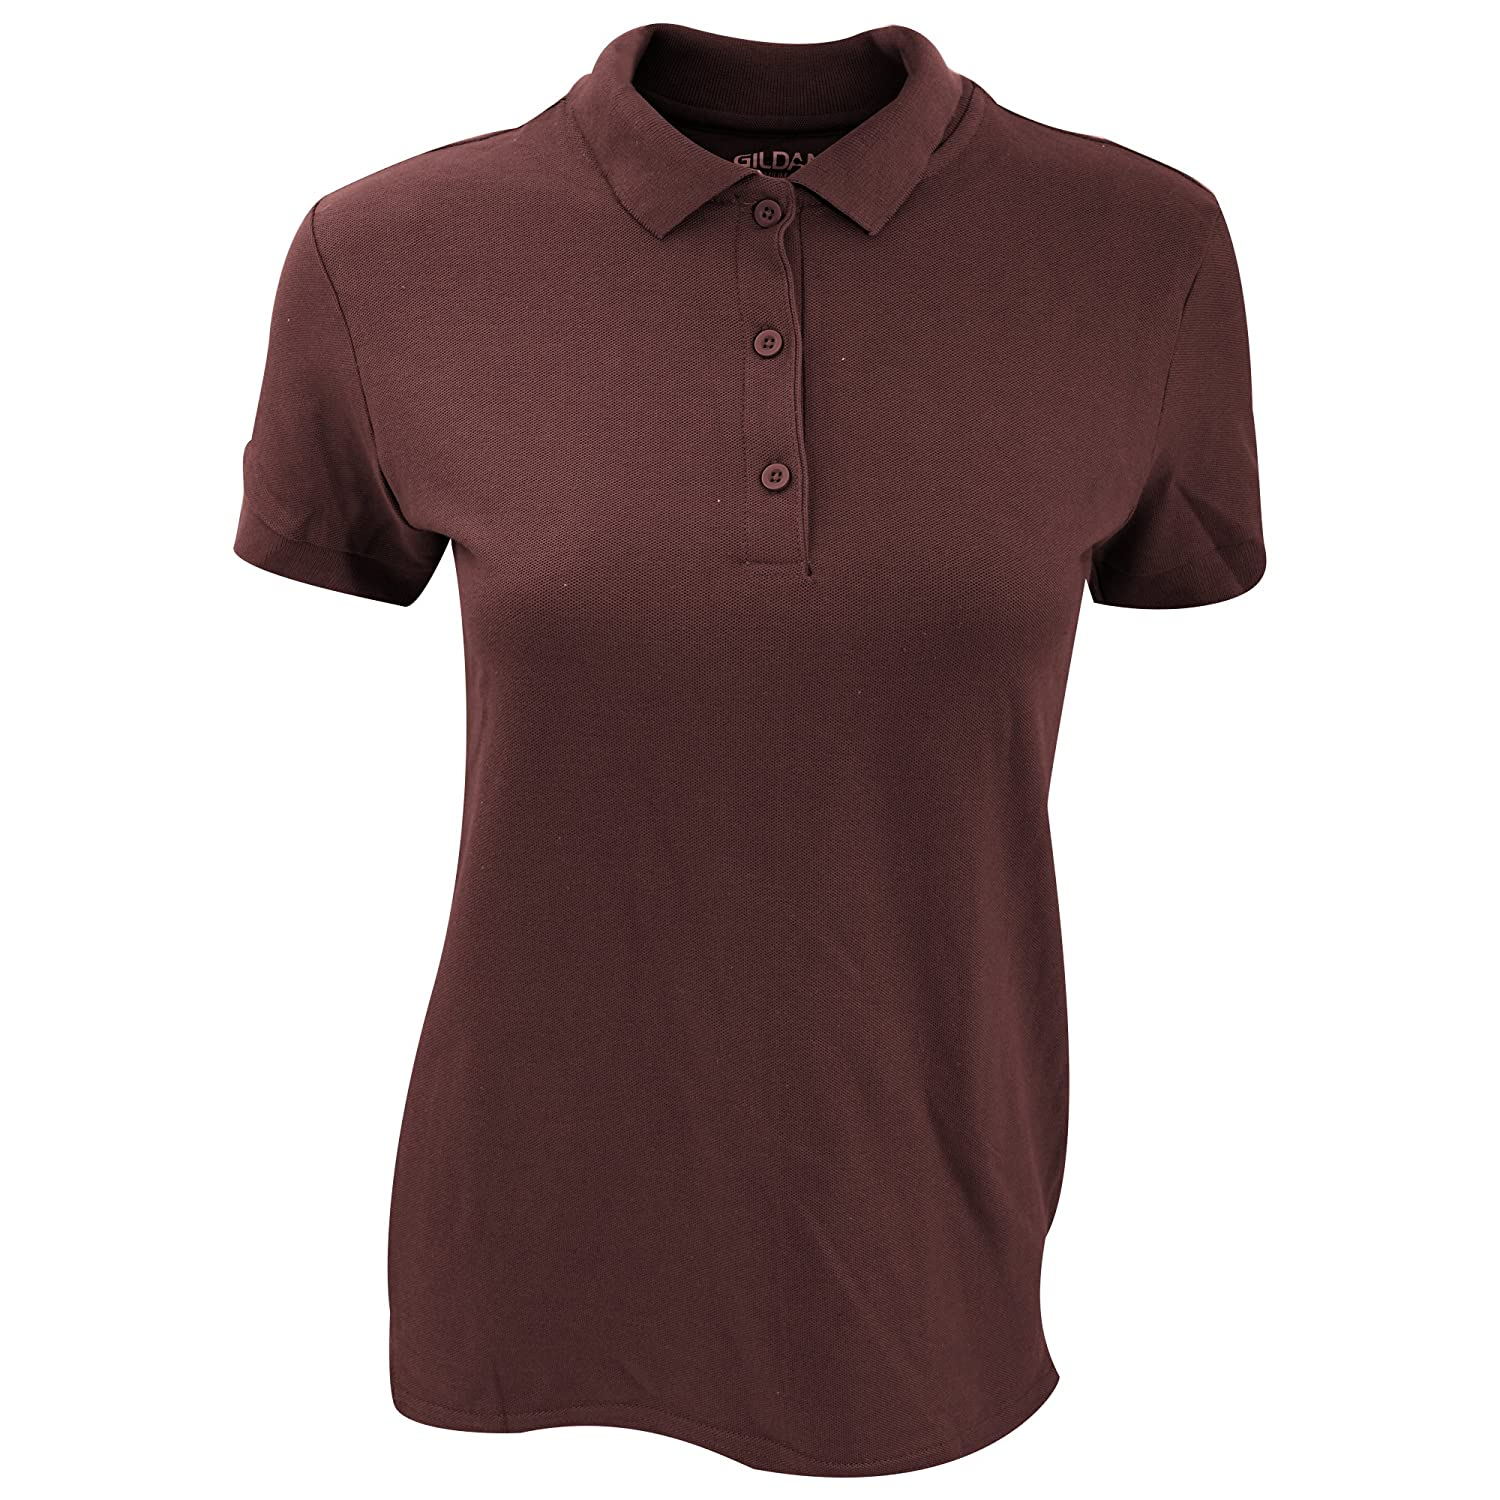 Gildan Womens/Ladies Premium Cotton Sport Double Pique Polo Shirt